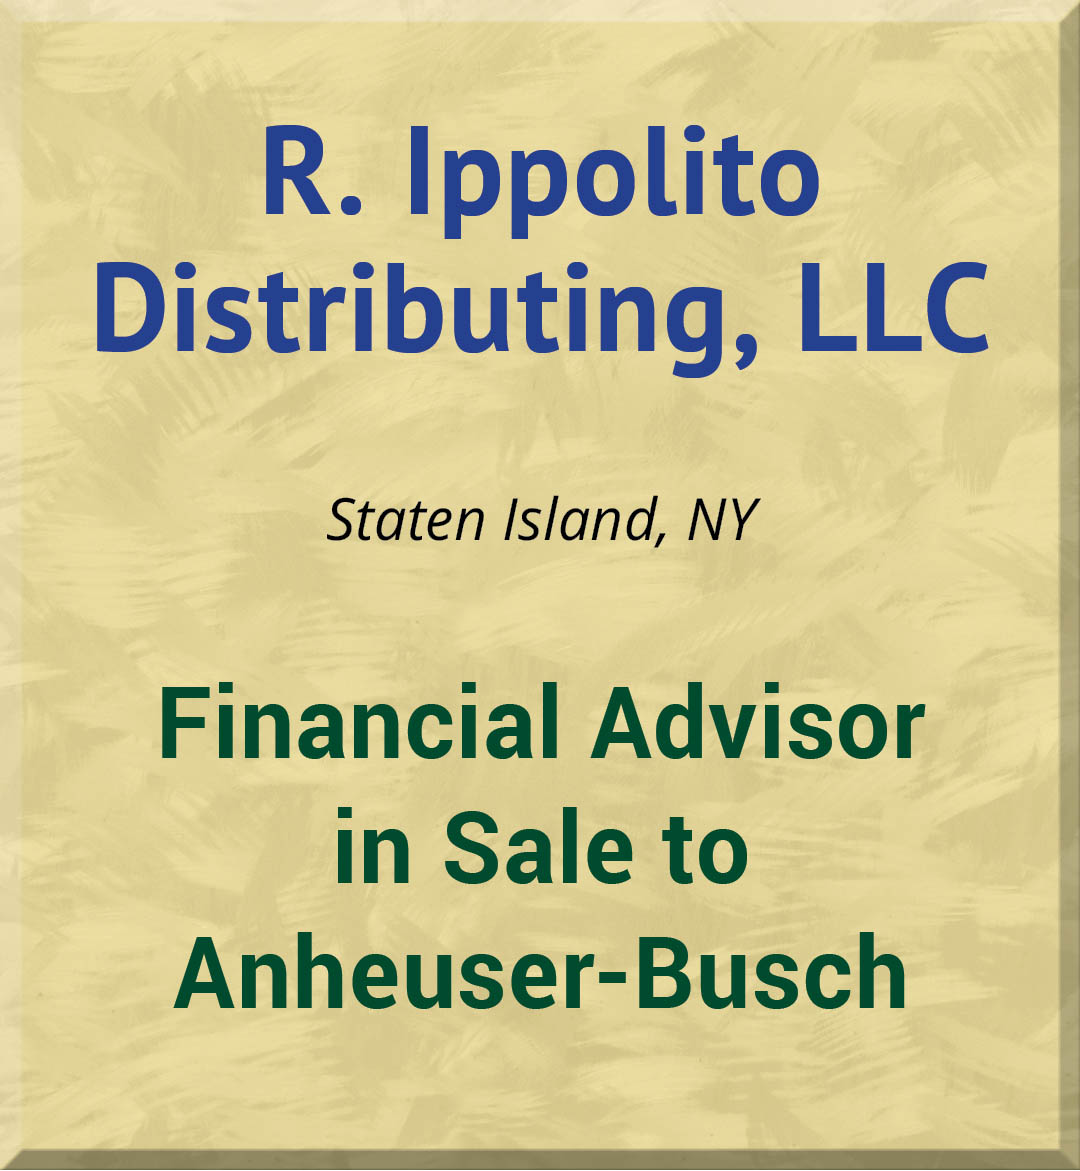 R. Ippolito Distributing, LLC